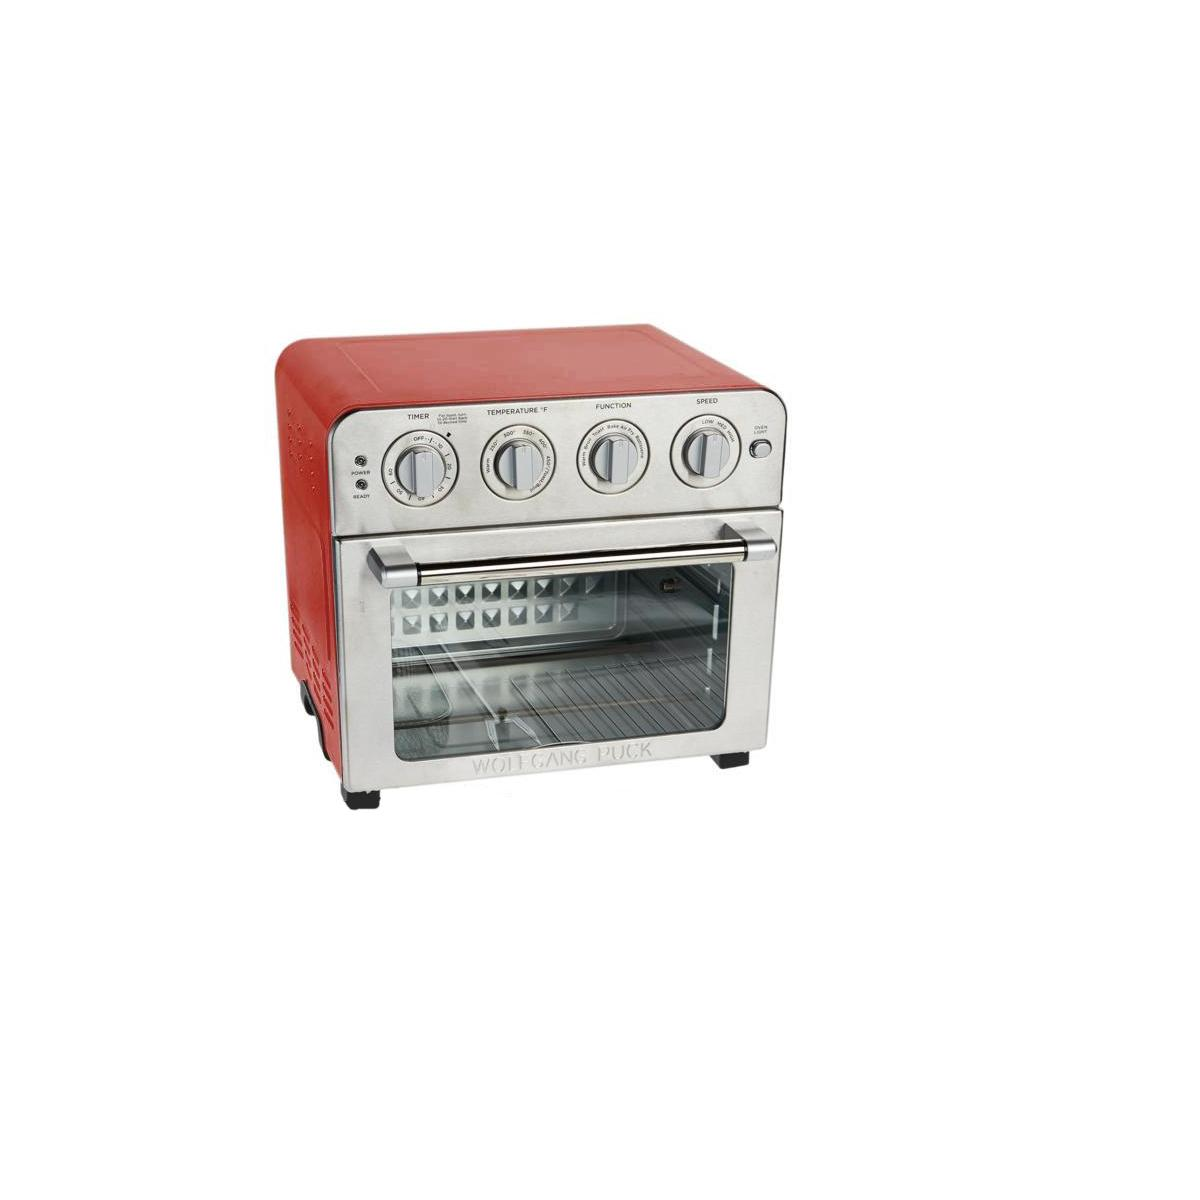 Mini Oven/Air Fryer Wolfgang Puck 669-175 - Red/Silver